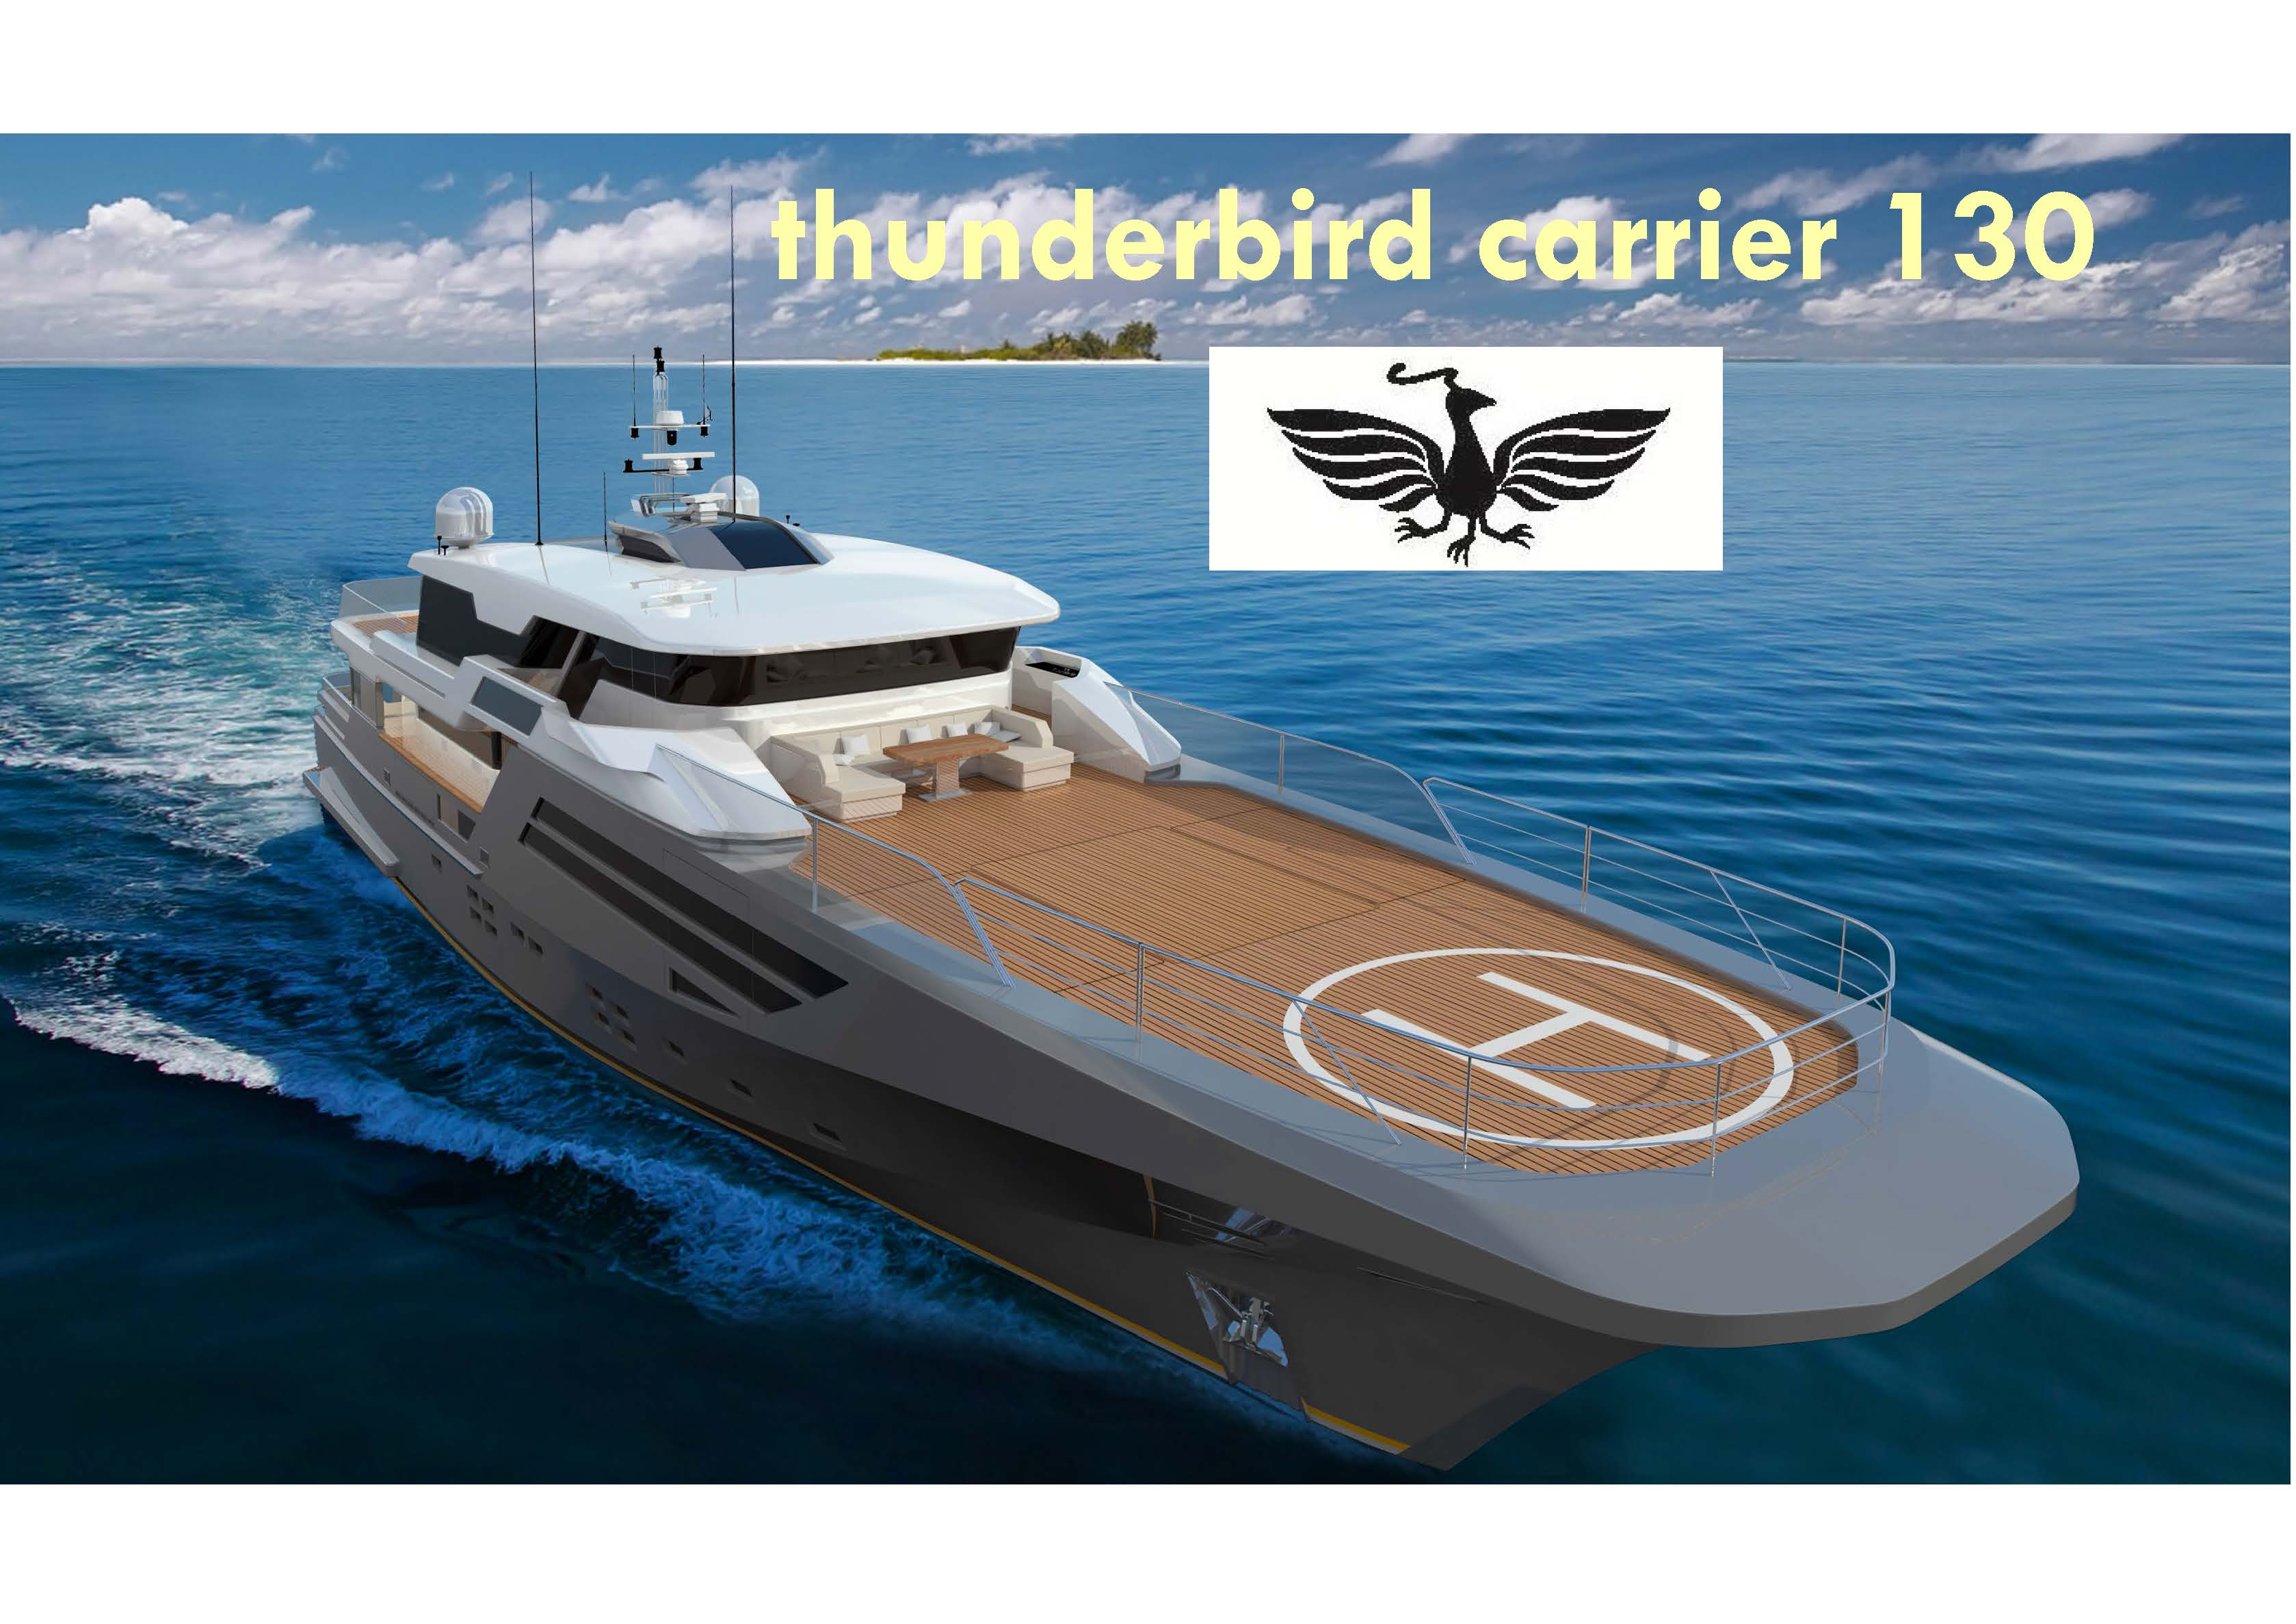 THUNDERBIRD_130_Carrier_페이지_01